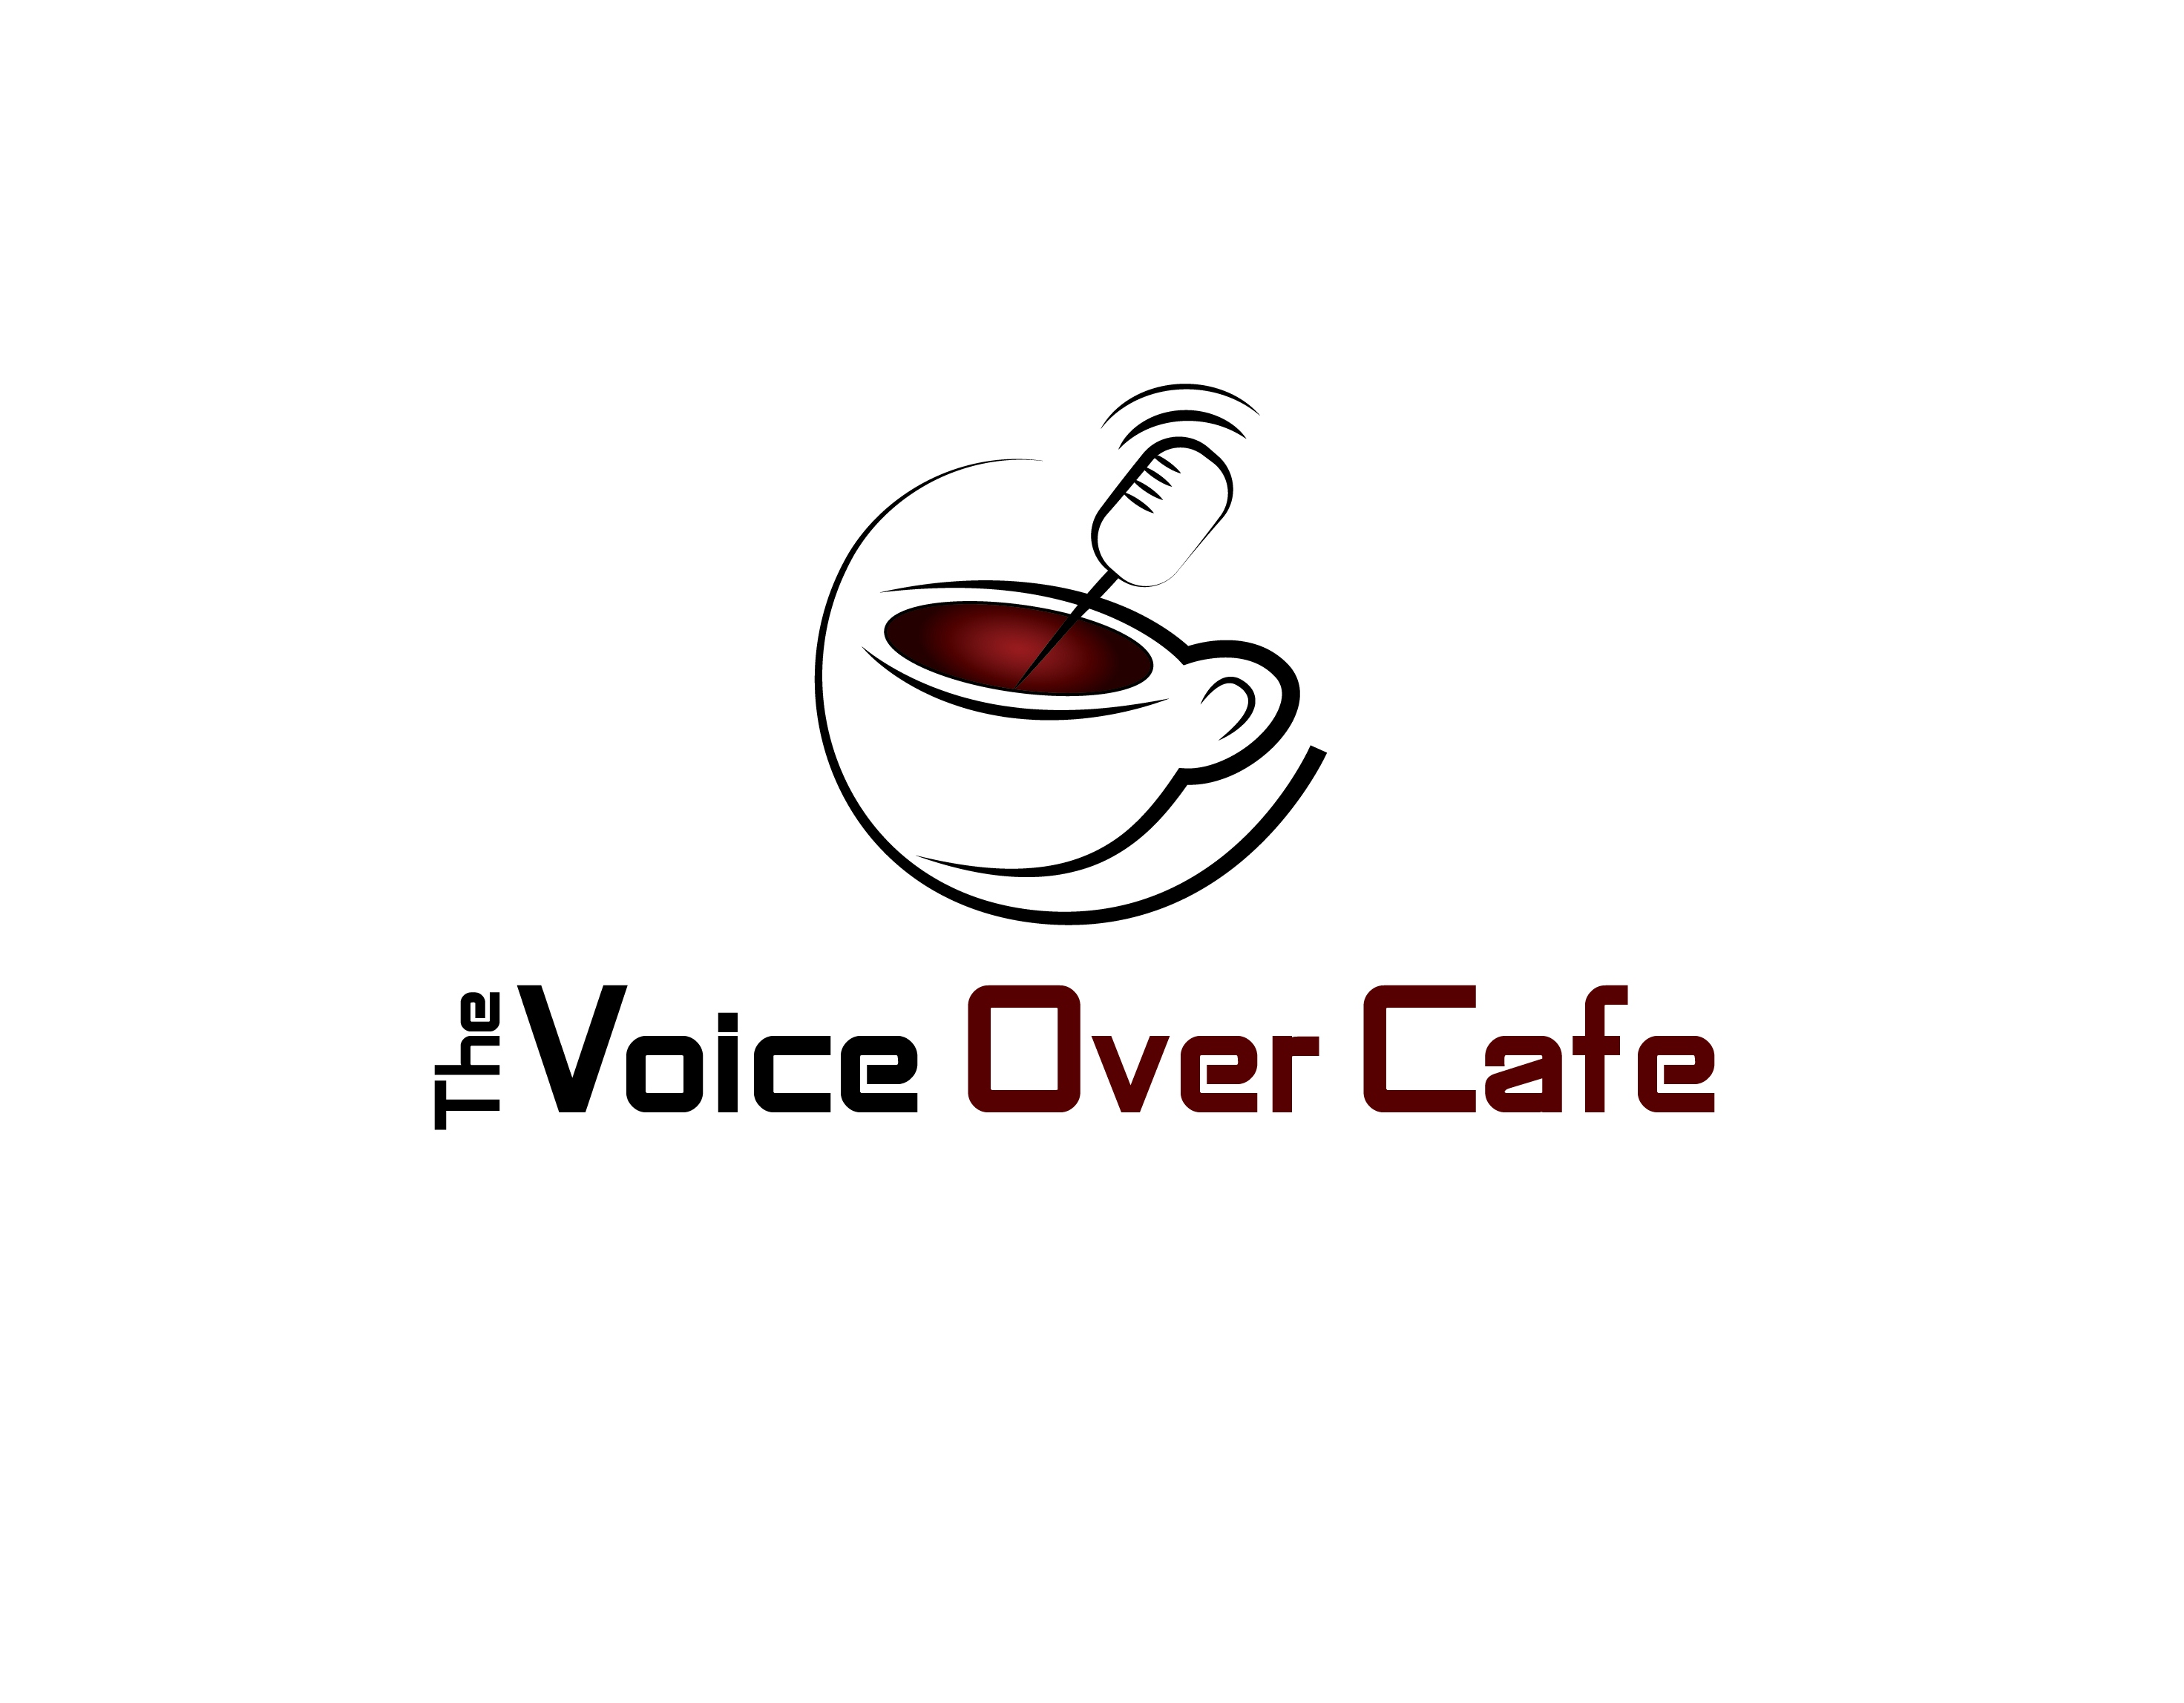 The Voice Over Cafe